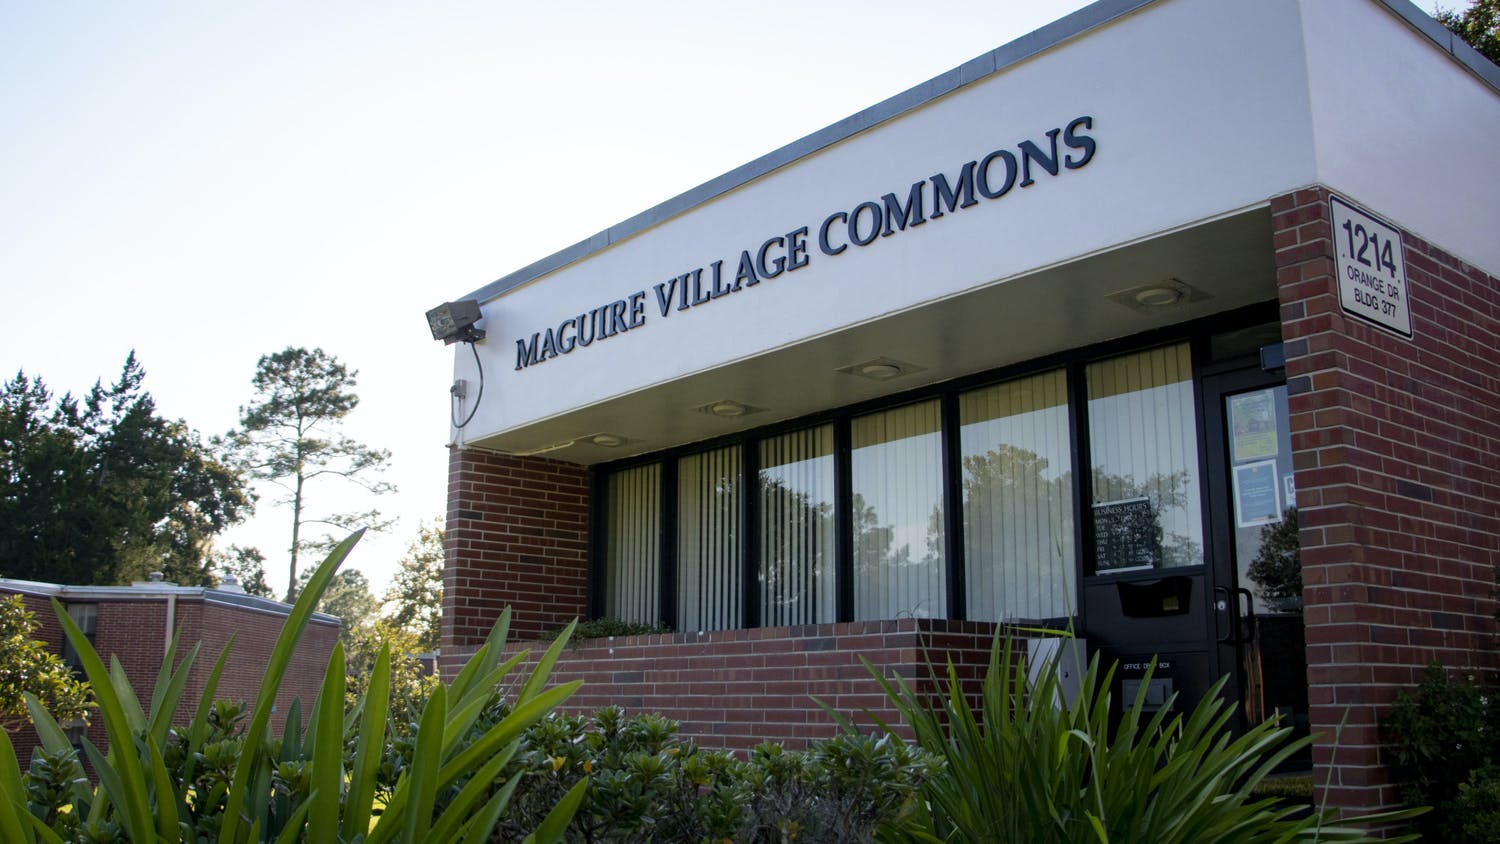 Maguire Village Commons is seen on Sunday, Sept. 26, 2021.